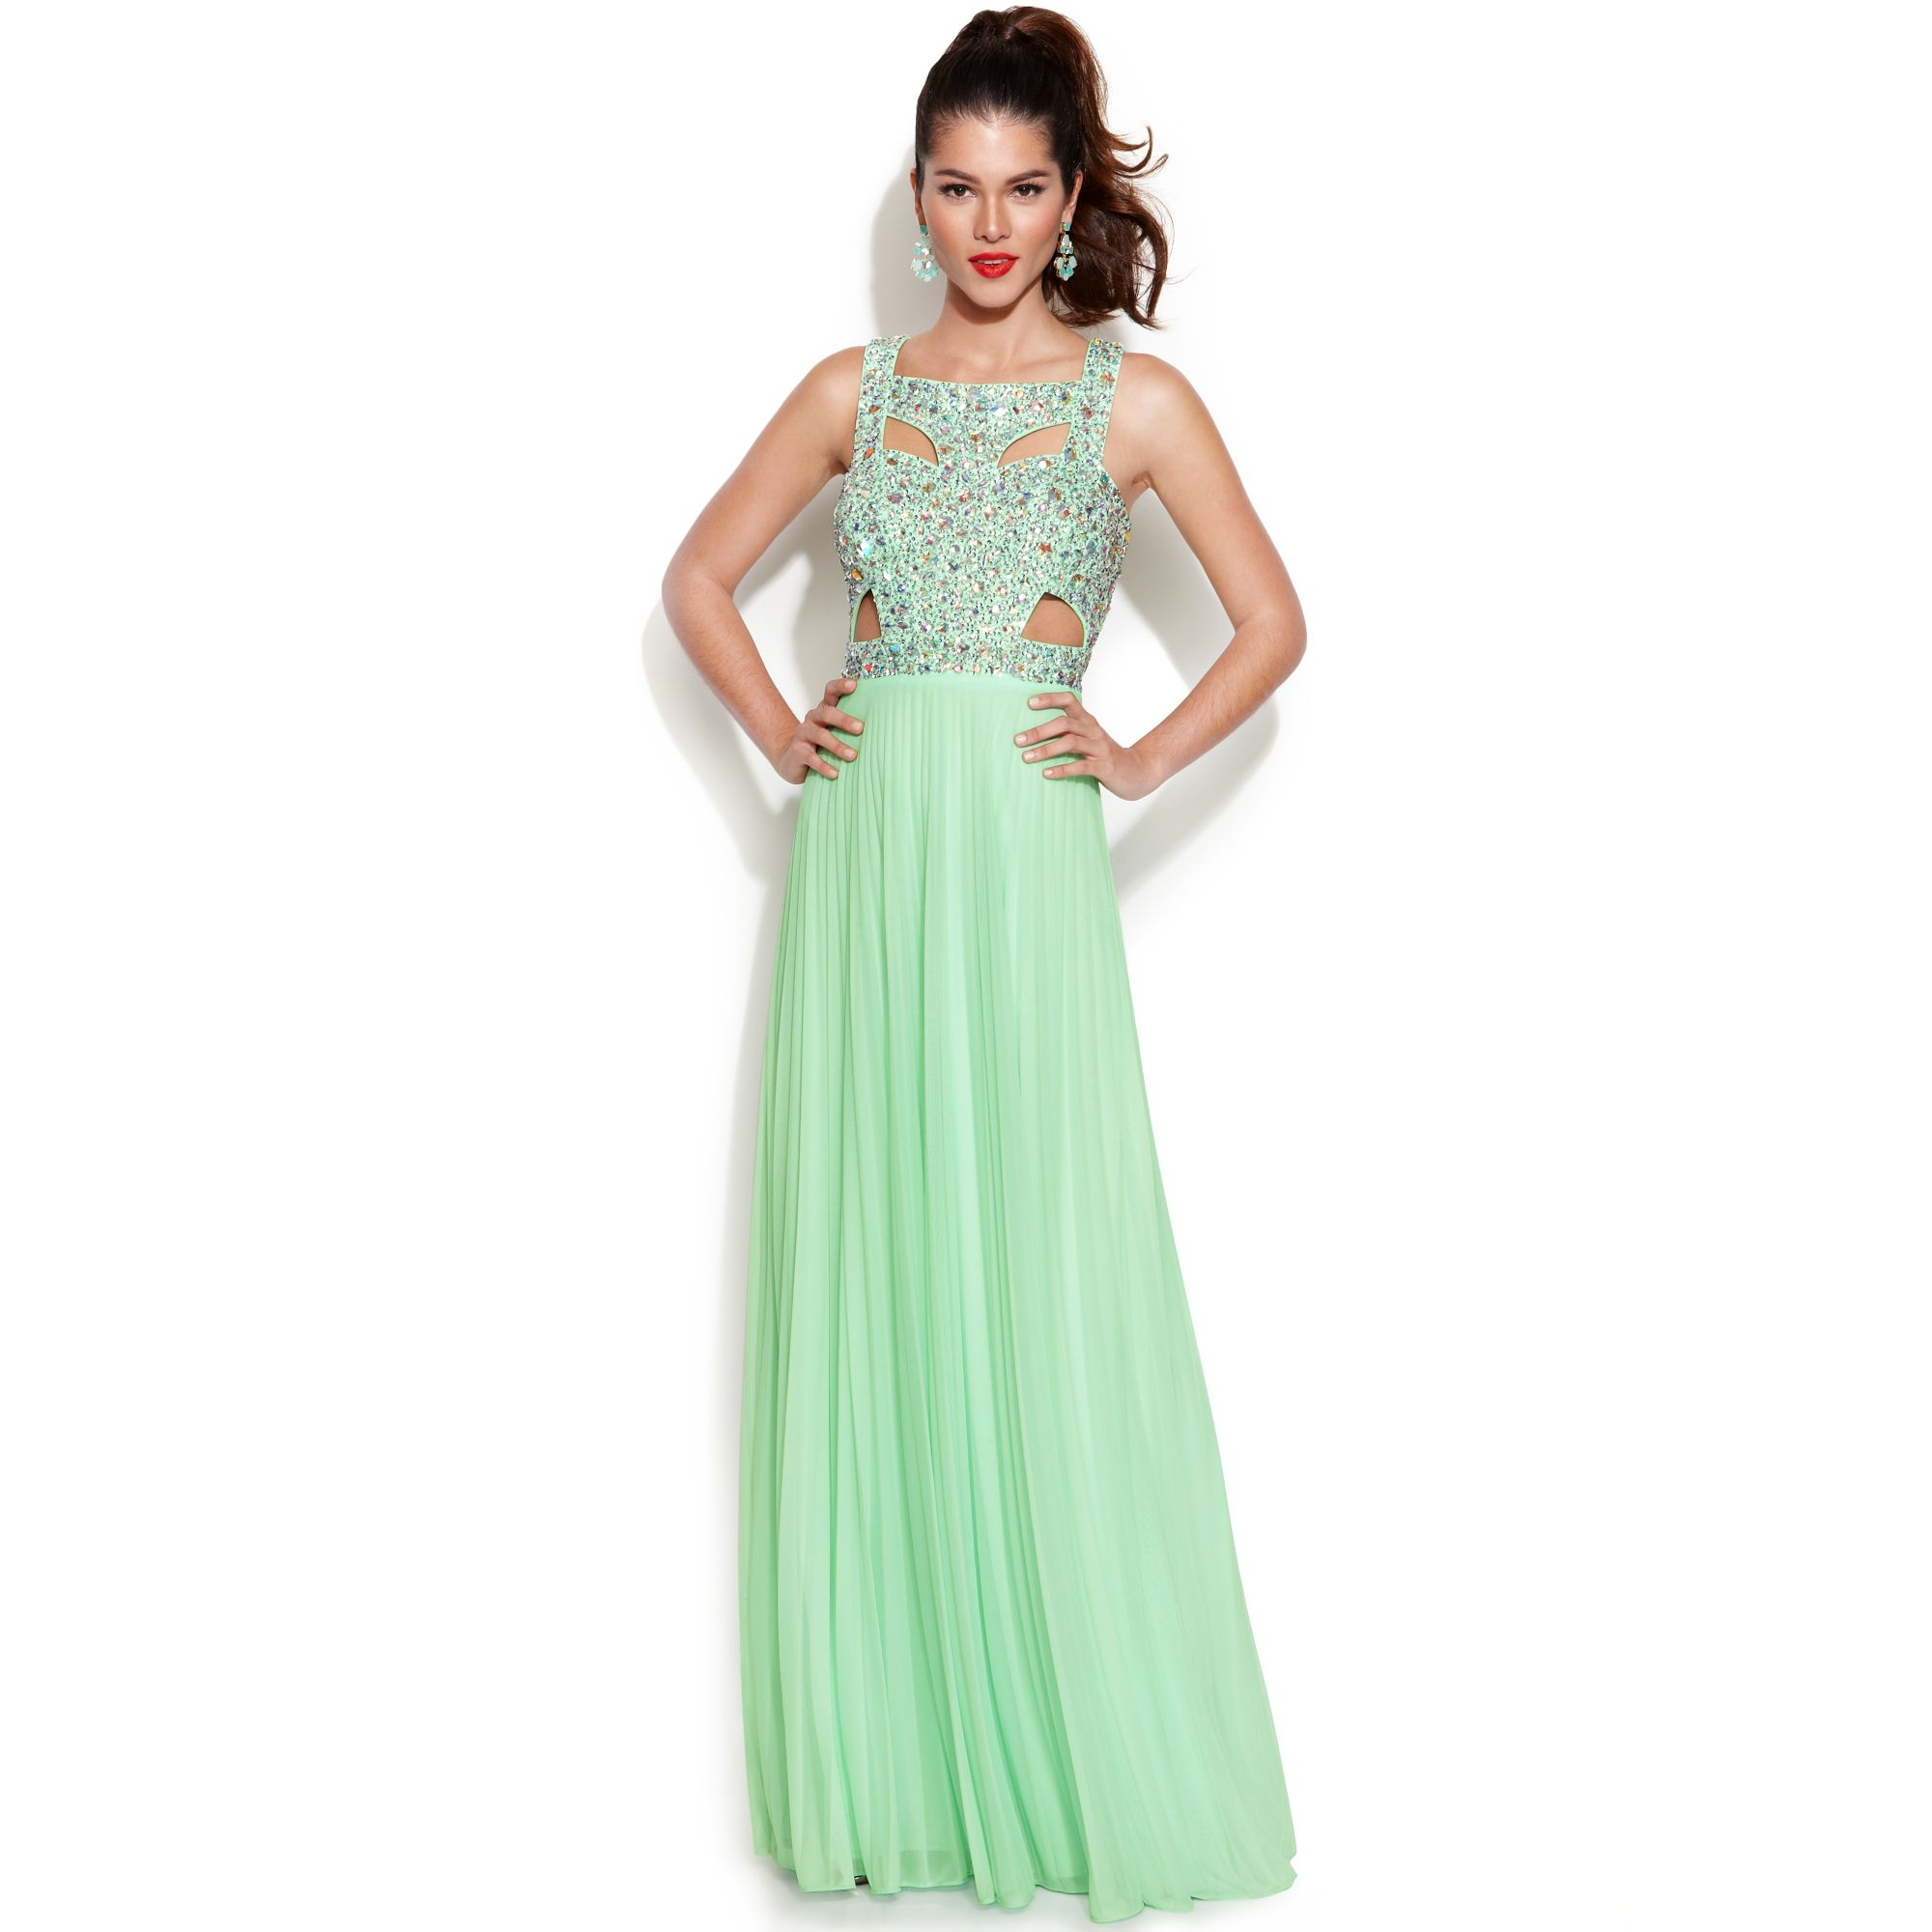 Lyst - Betsy & Adam Sleeveless Embellished Cutout Gown in Green